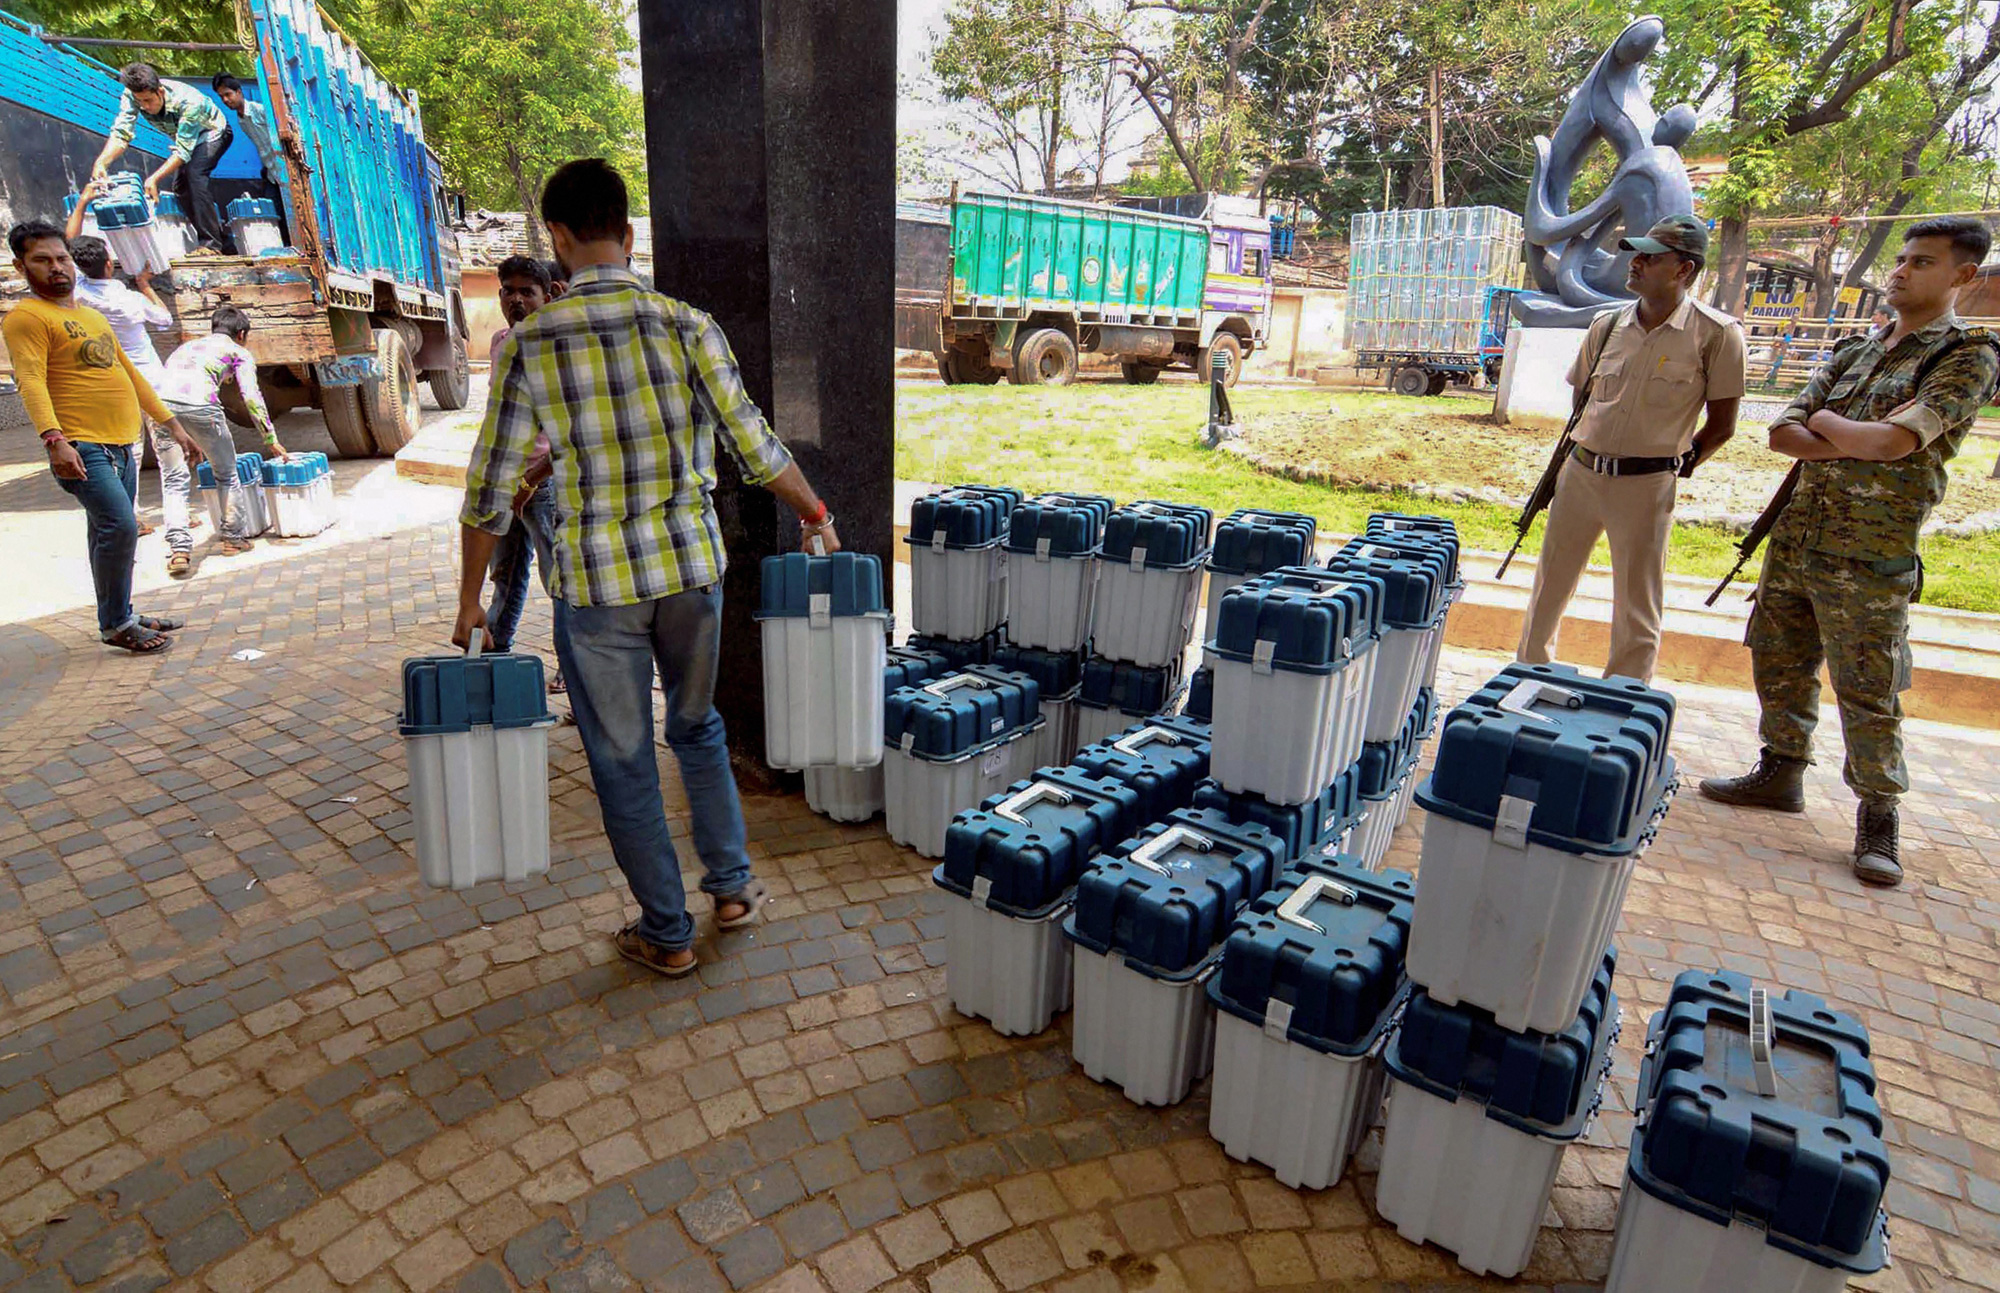 Workers load Voter-verified paper audit trail (VVPAT) machines in a truck, ahead of the Lok Sabha elections, in Birbhum on Sunday, March 31, 2019.